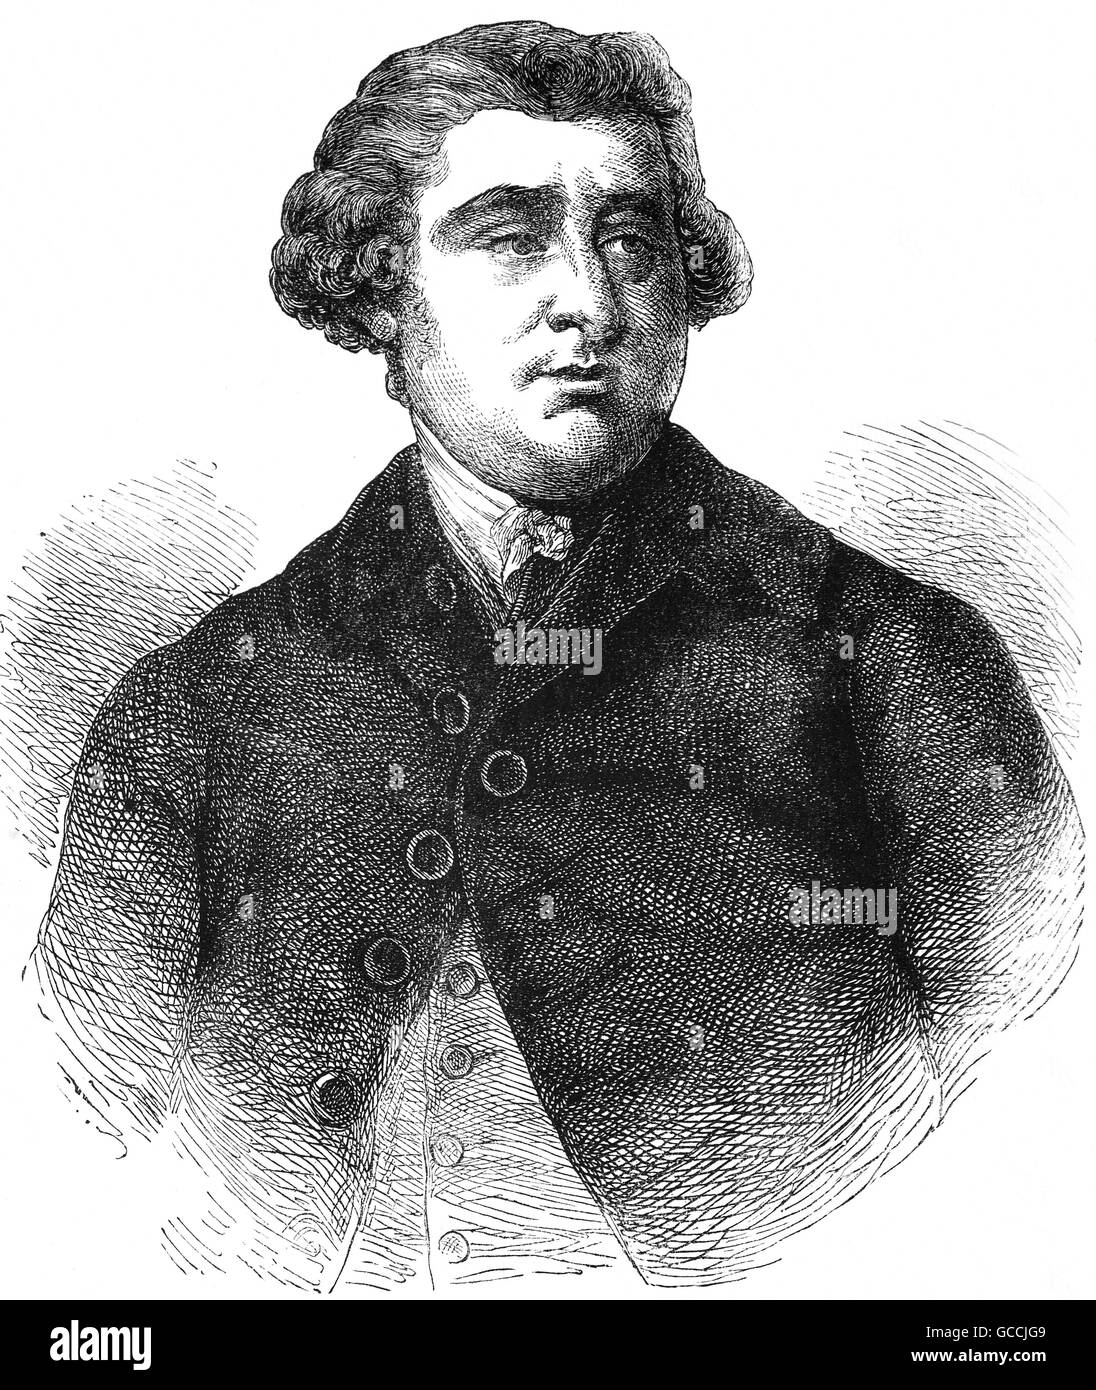 Charles James Fox (1749 - 1806), l'Honorable de 1762, était un éminent homme d'État britannique Photo Stock